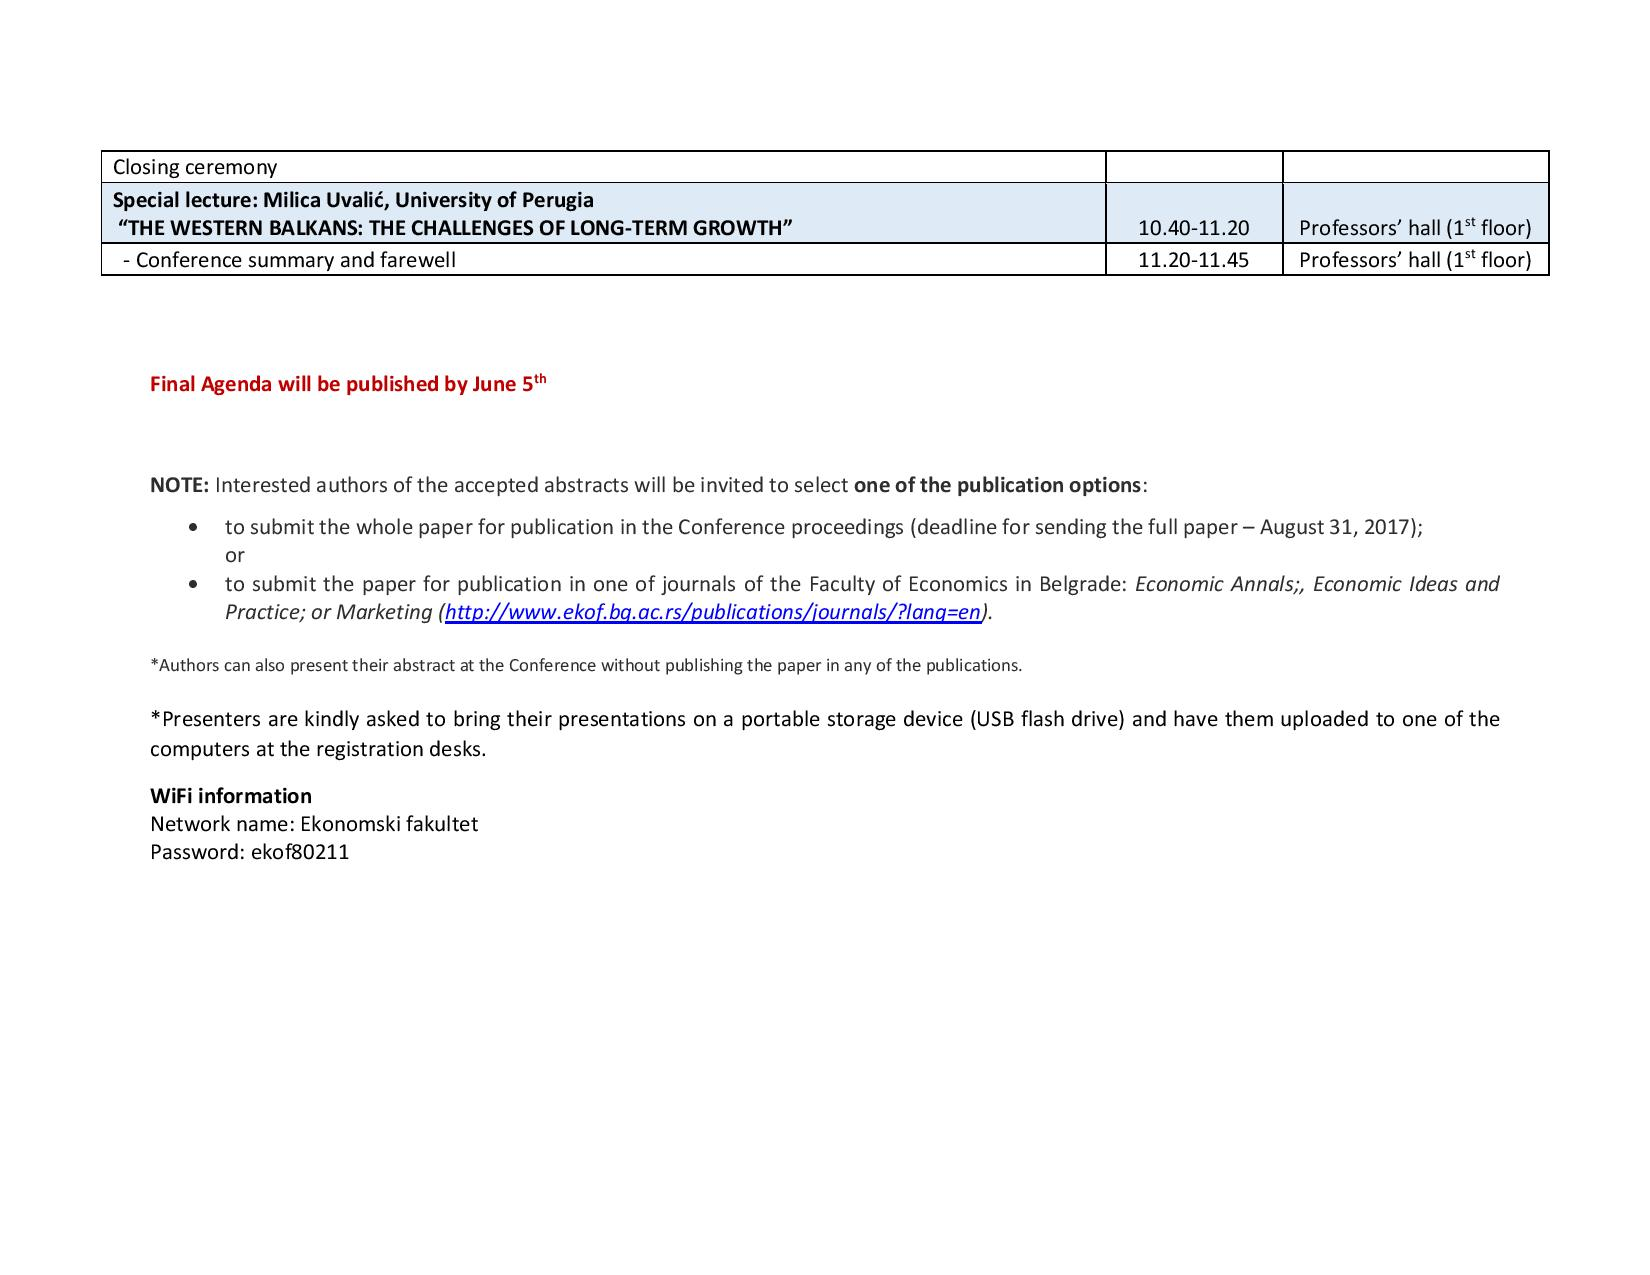 Conference program_Faculty of Economics (University of Belgrade)_draft-page-010